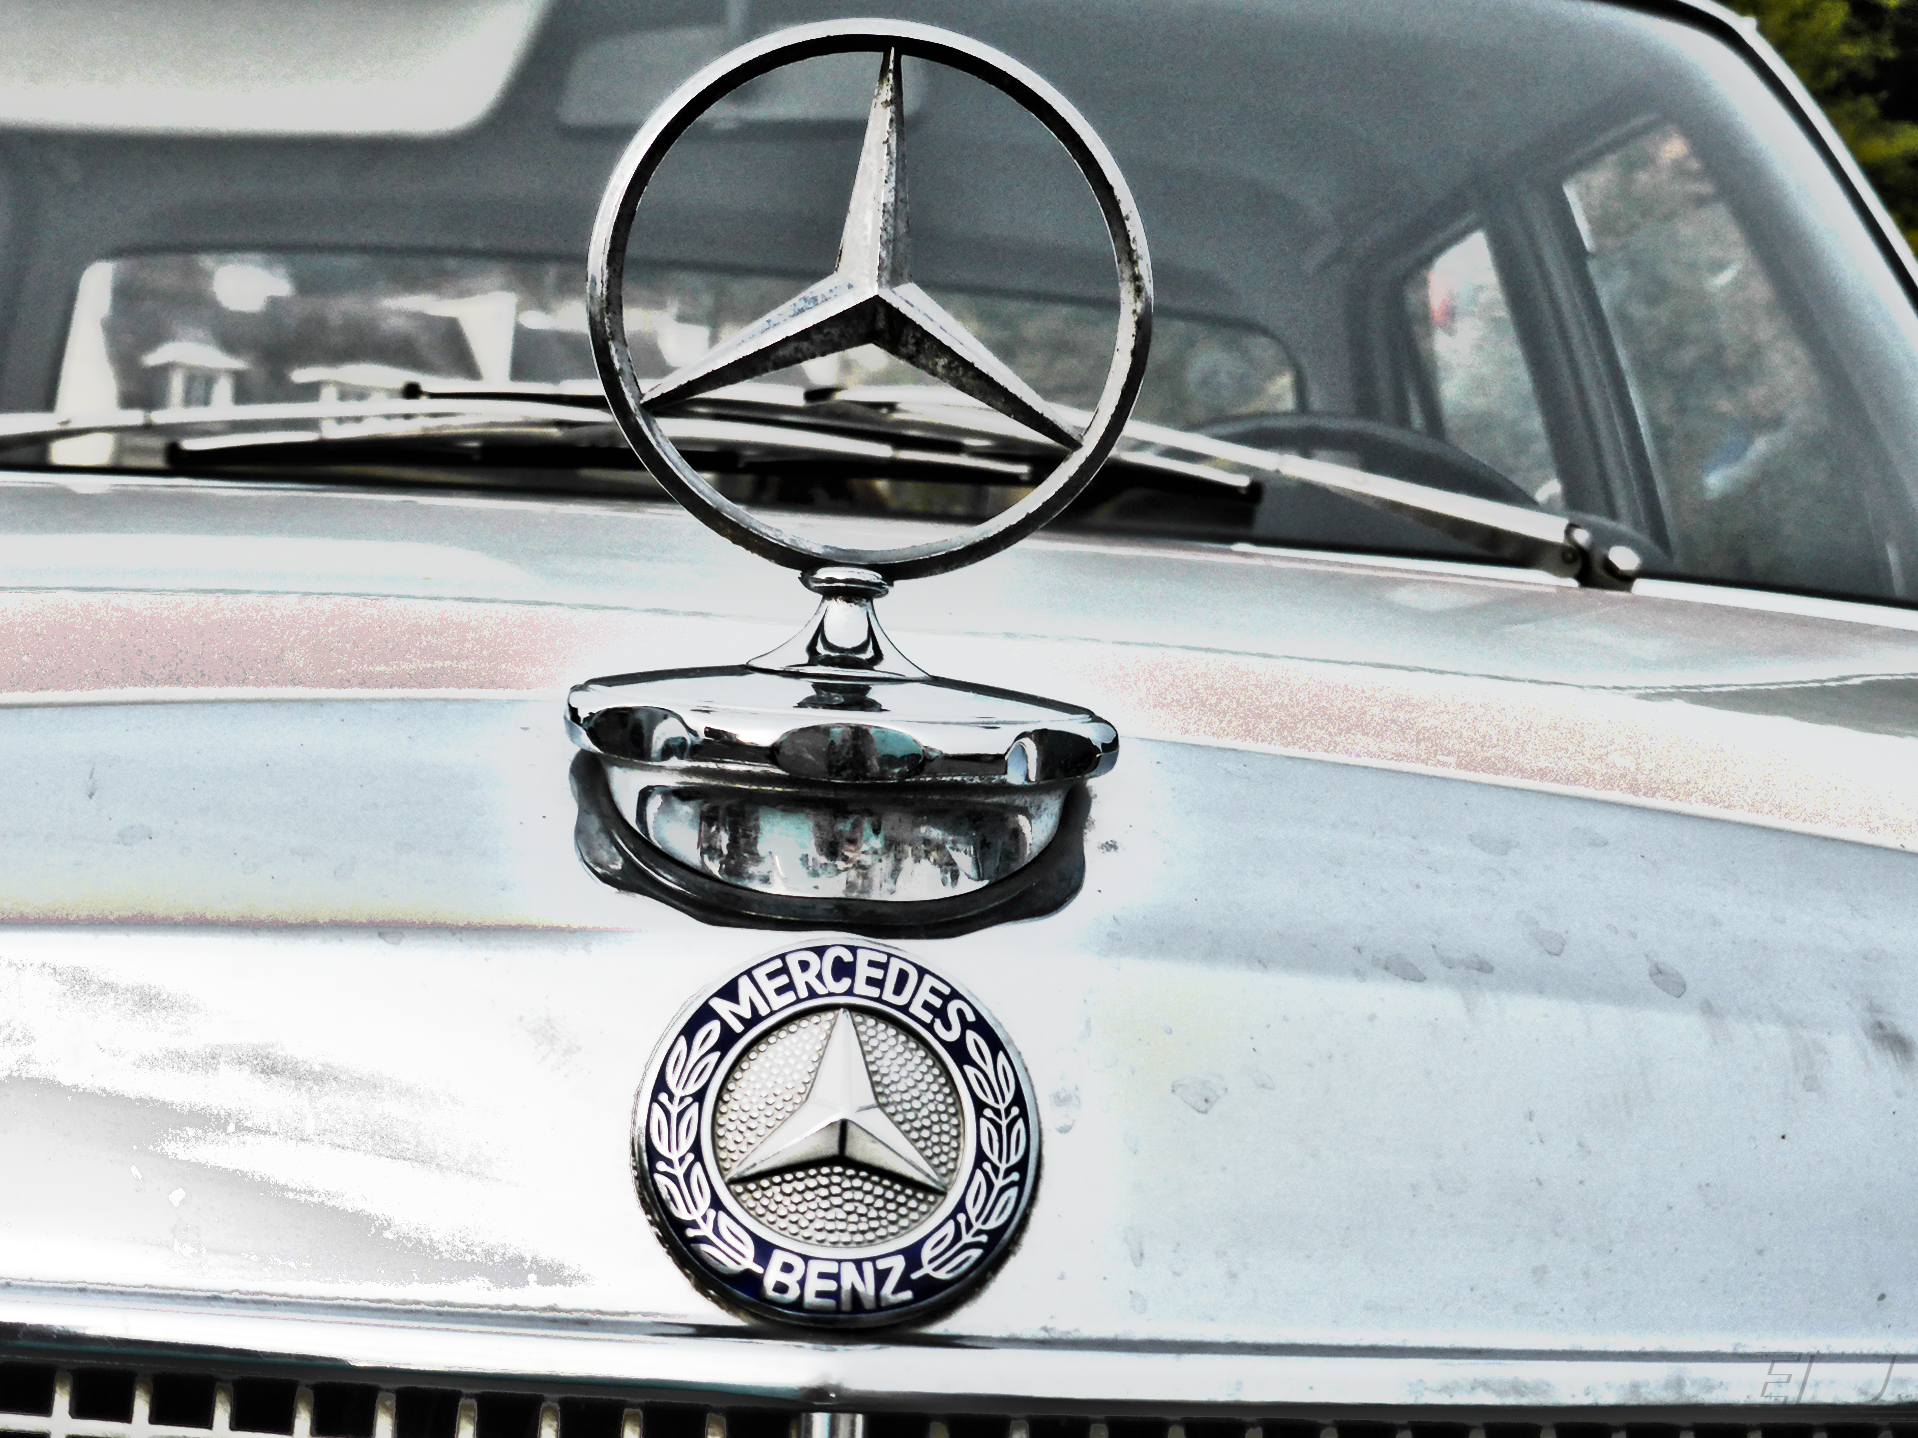 Mercedes-Benz 200 - silver star - AVAM - 2018 - photo by ELJ